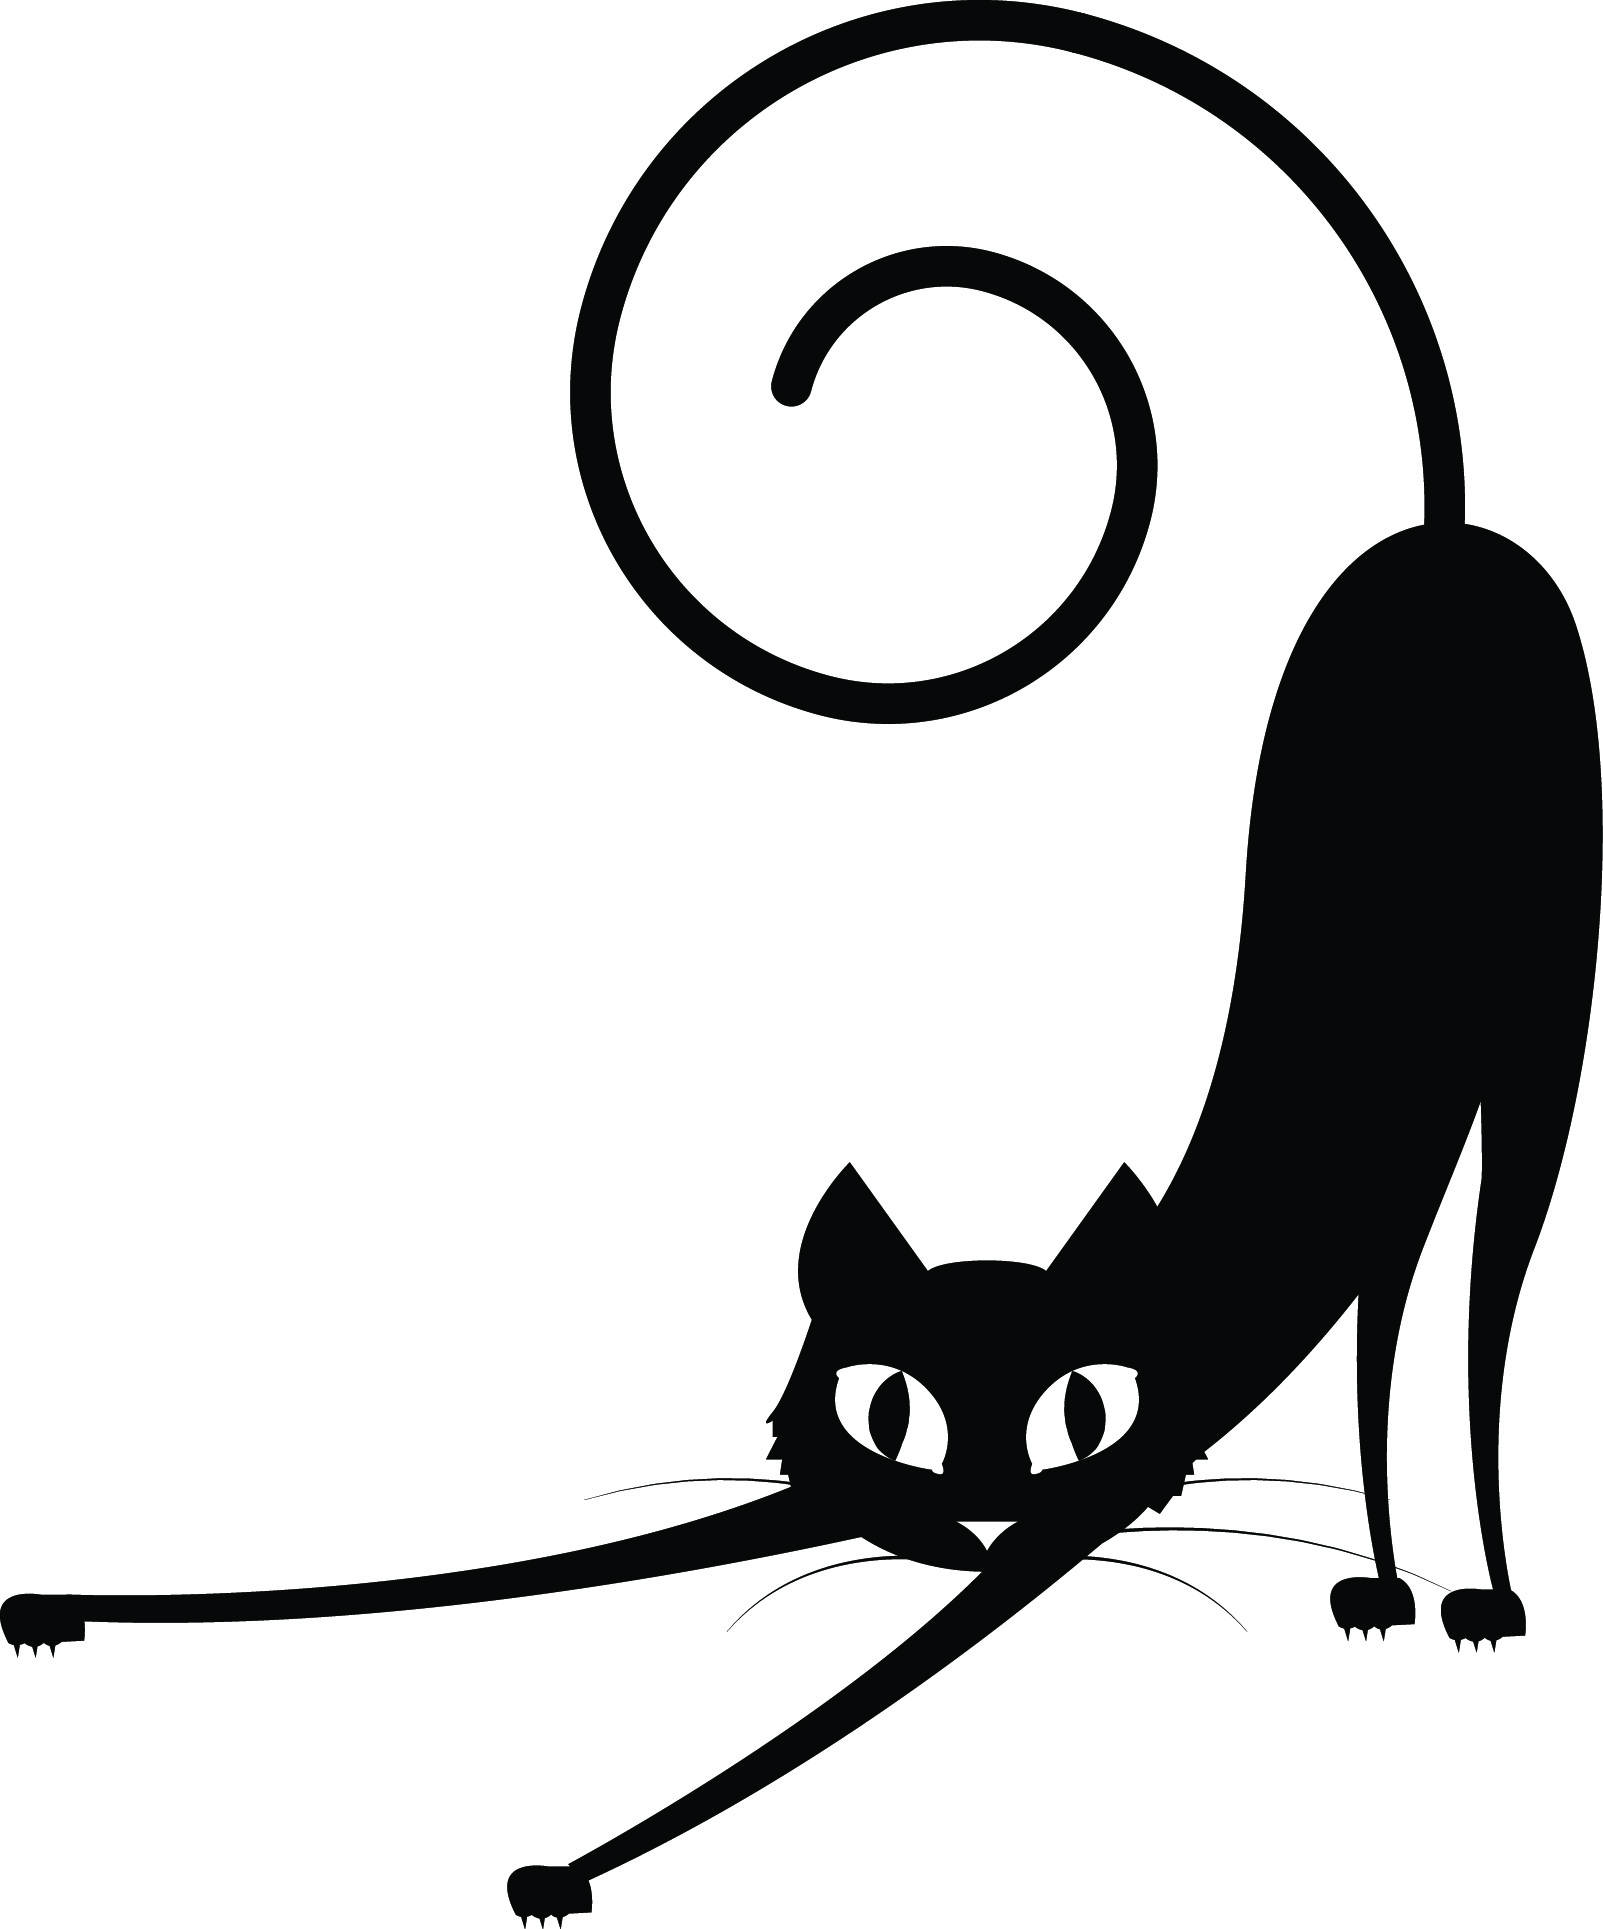 The Best Free Black Cat Silhouette Images Download From